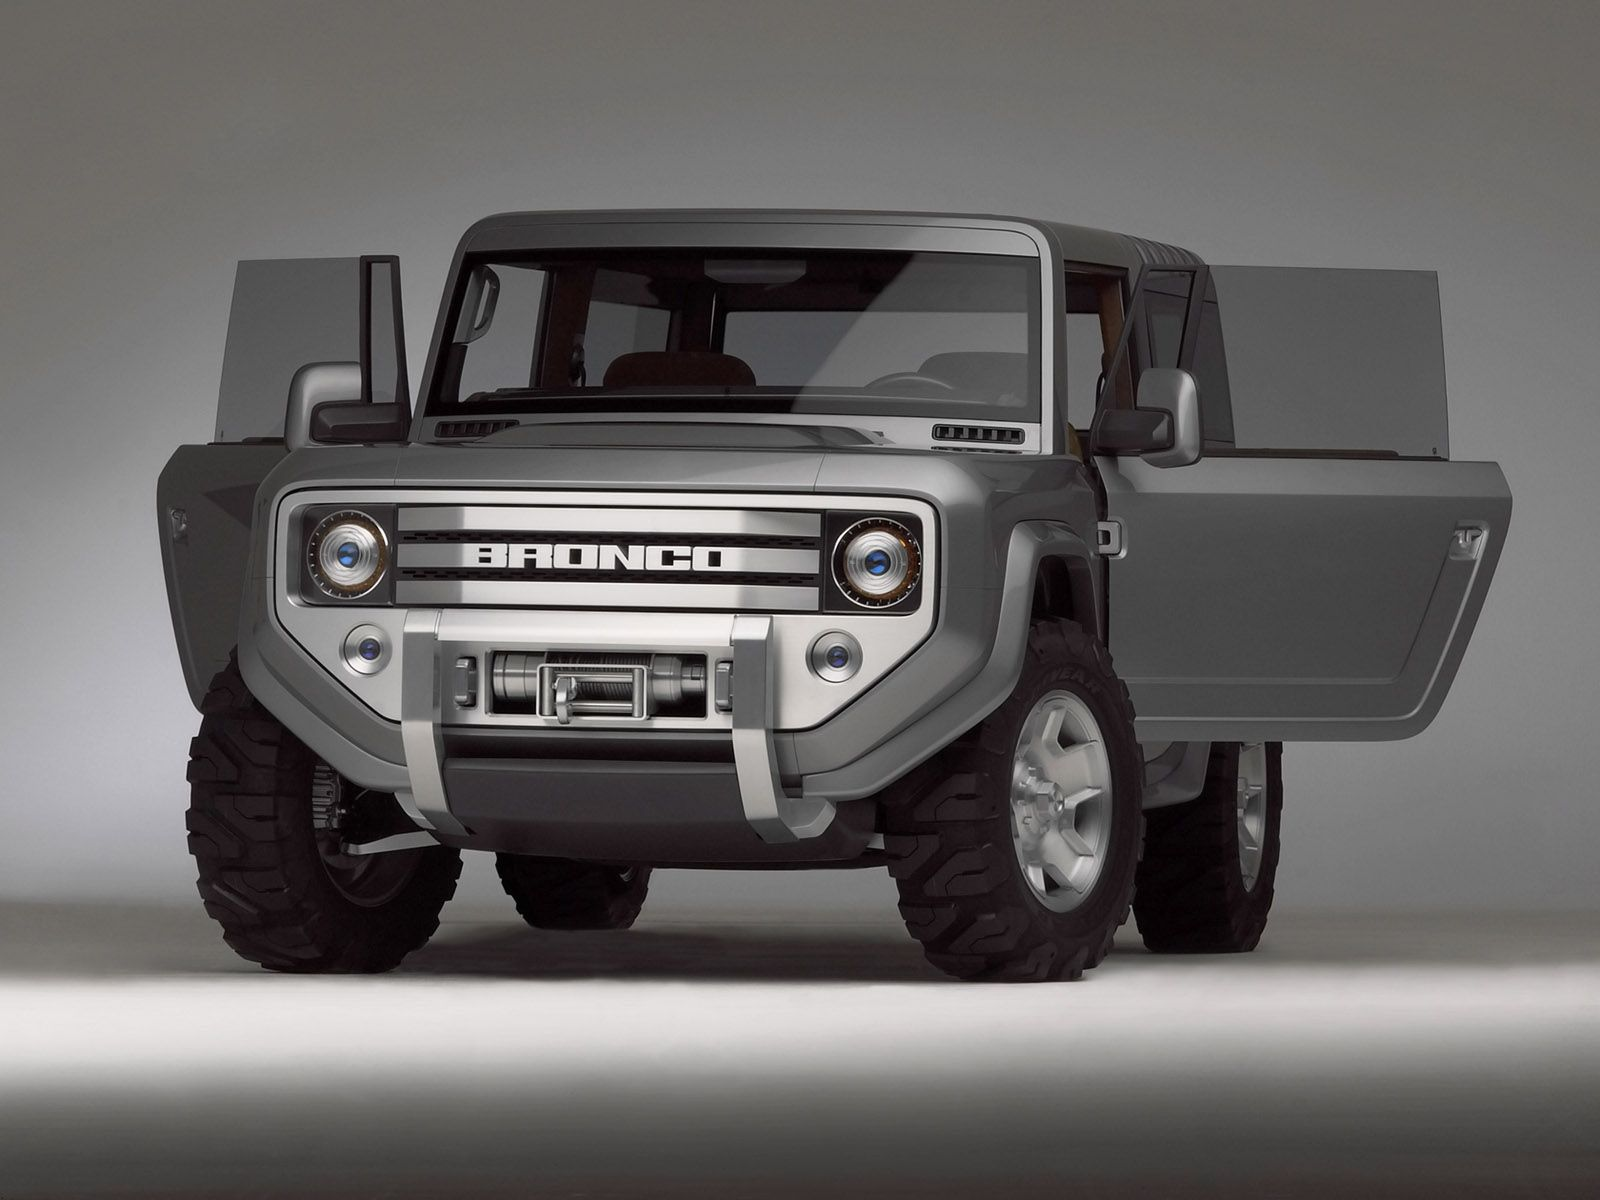 2015 ford bronco concept 2015 ford bronco is the future car that will be made